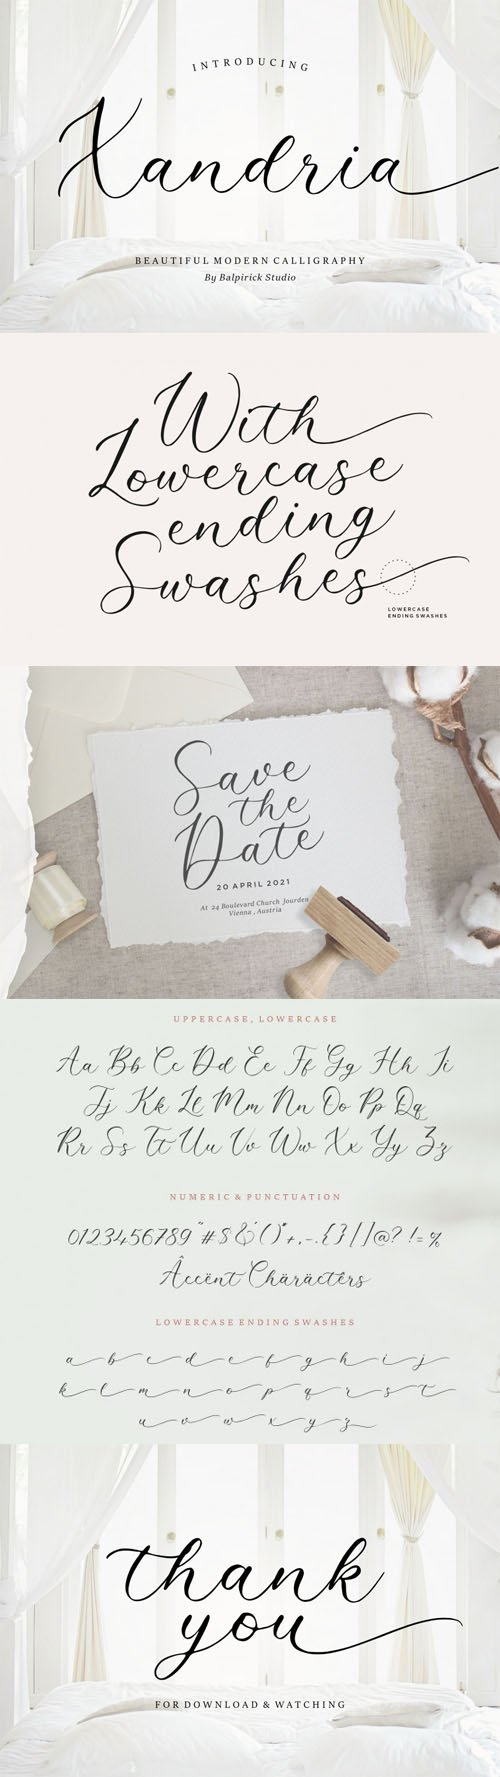 Xandria - Beautiful Modern Calligraphy Font